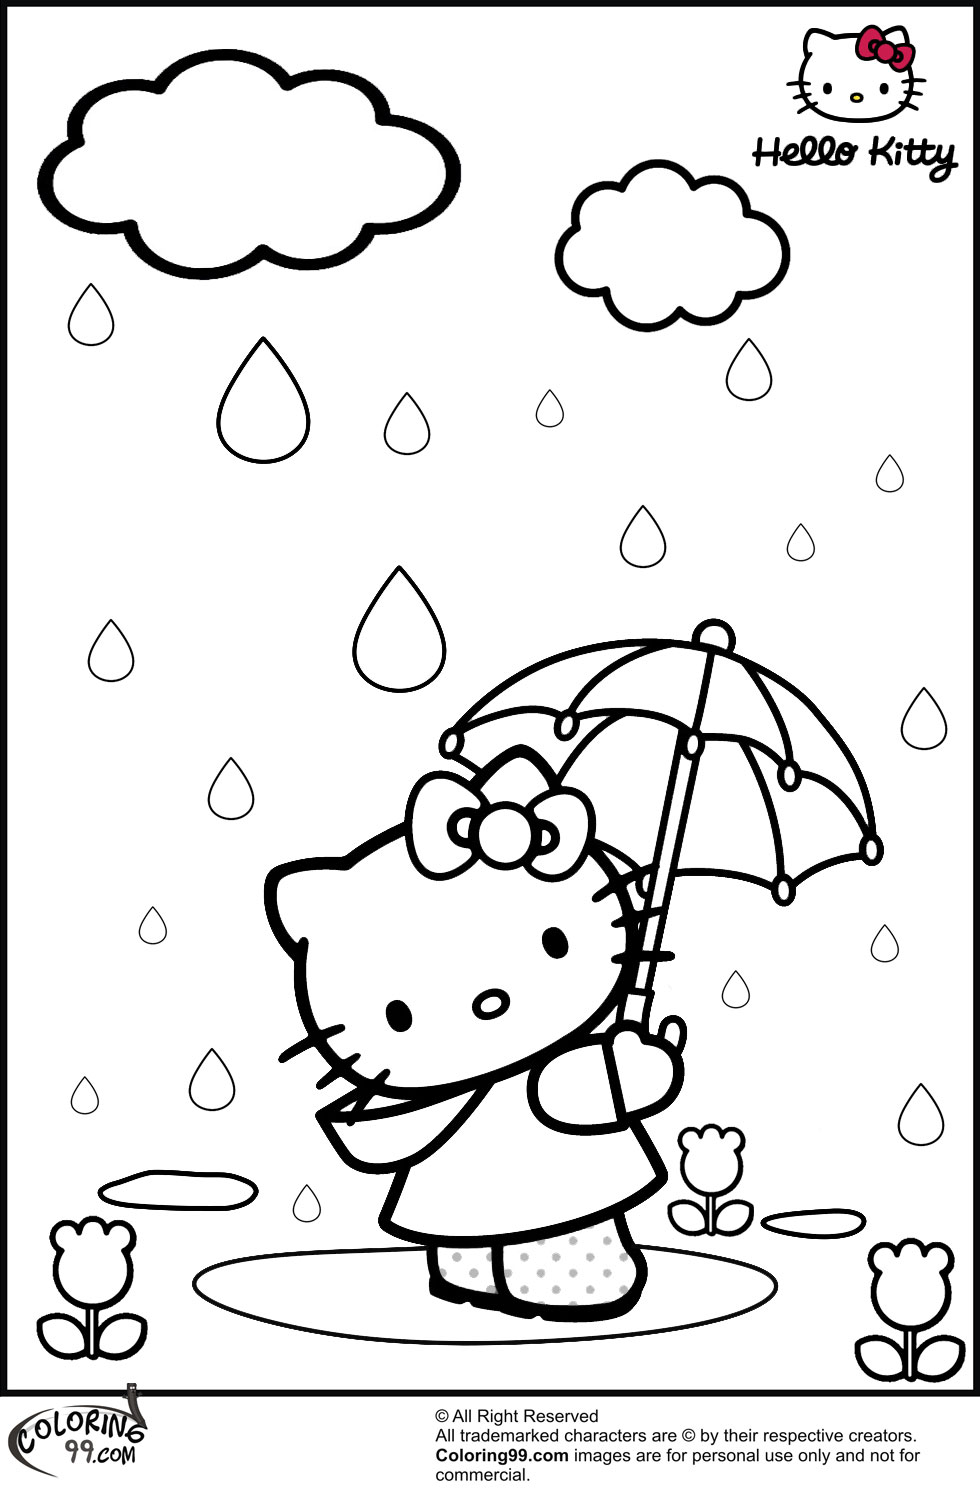 Hello kitty coloring pages team colors for Hello kitty princess coloring page